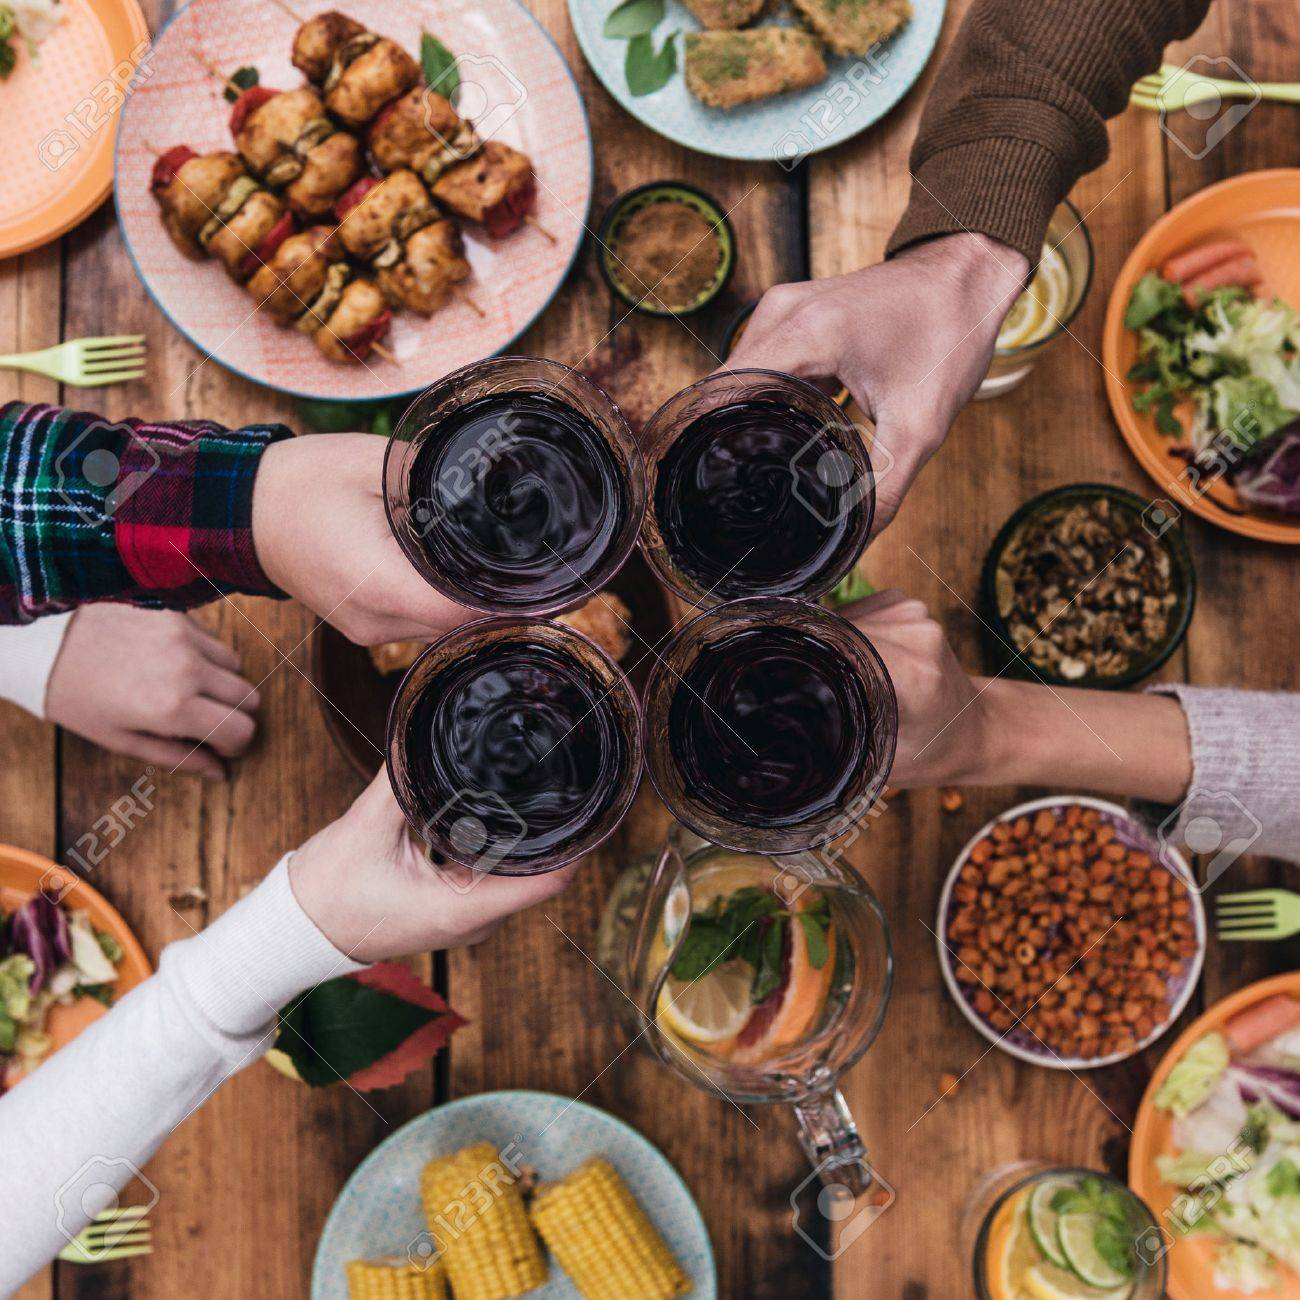 Dining Table Cheers To Friends Top View Of Four People Cheering With Red Wine While Sitting At